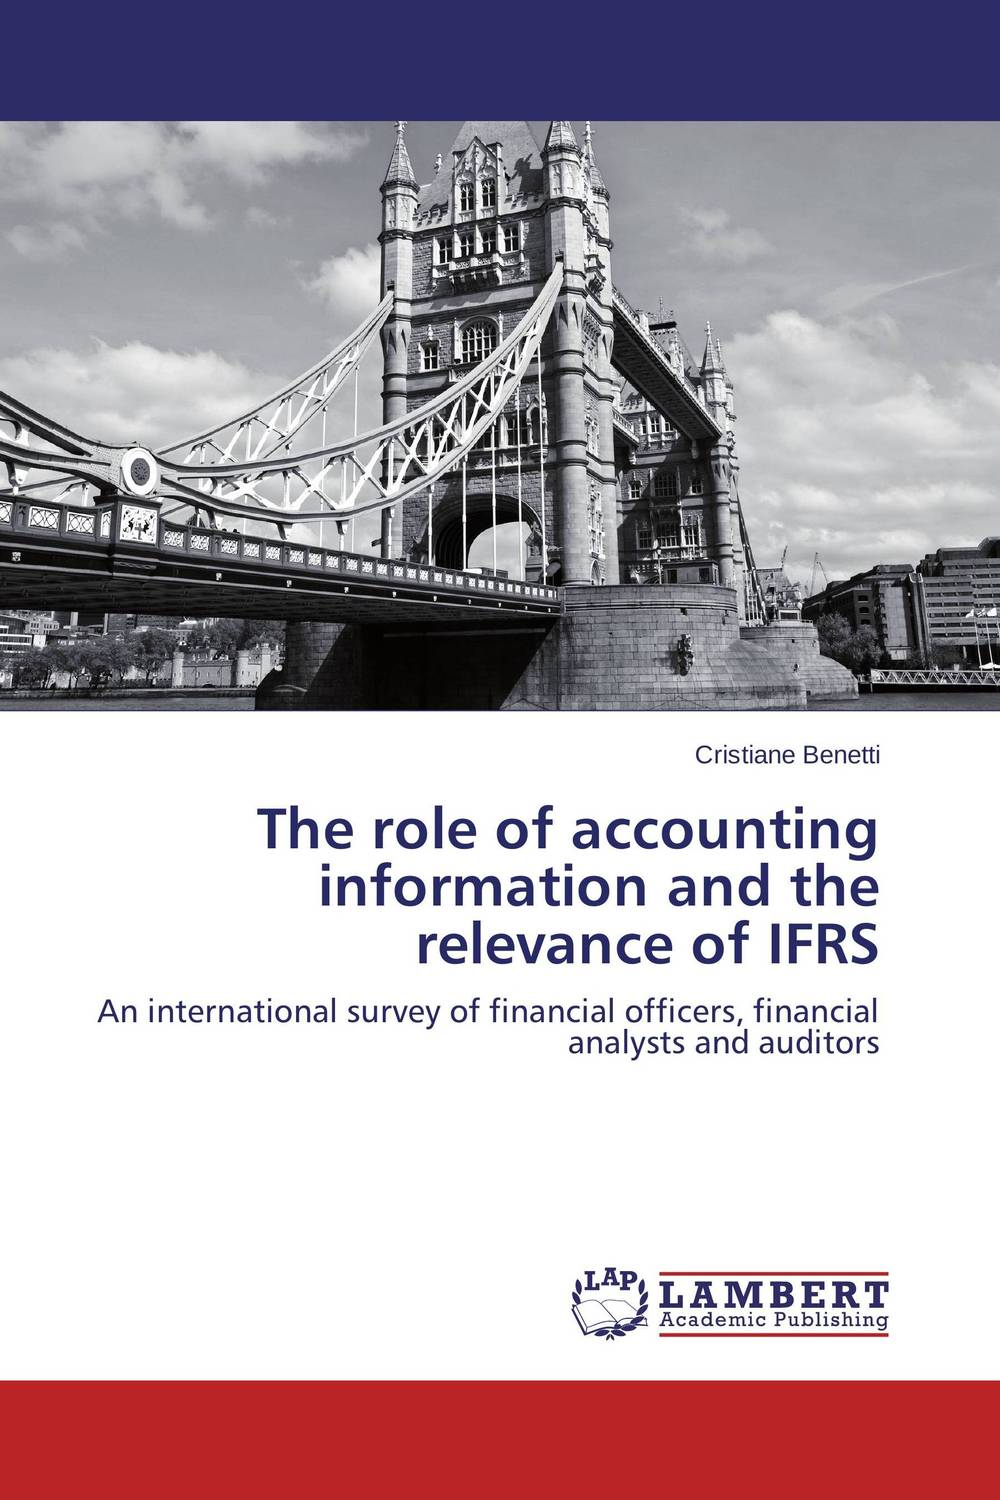 The role of accounting information and the relevance of IFRS